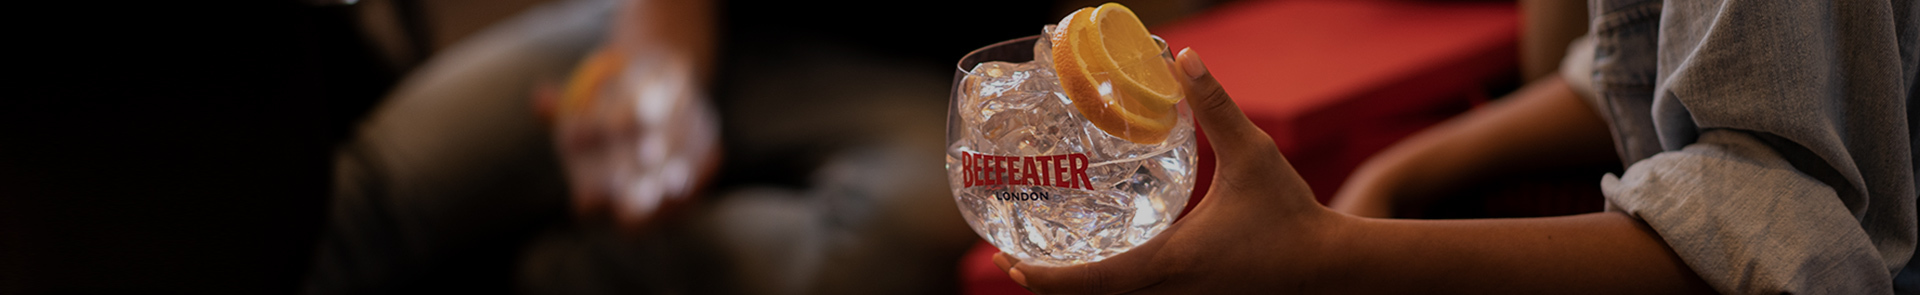 Beefeater - Blog